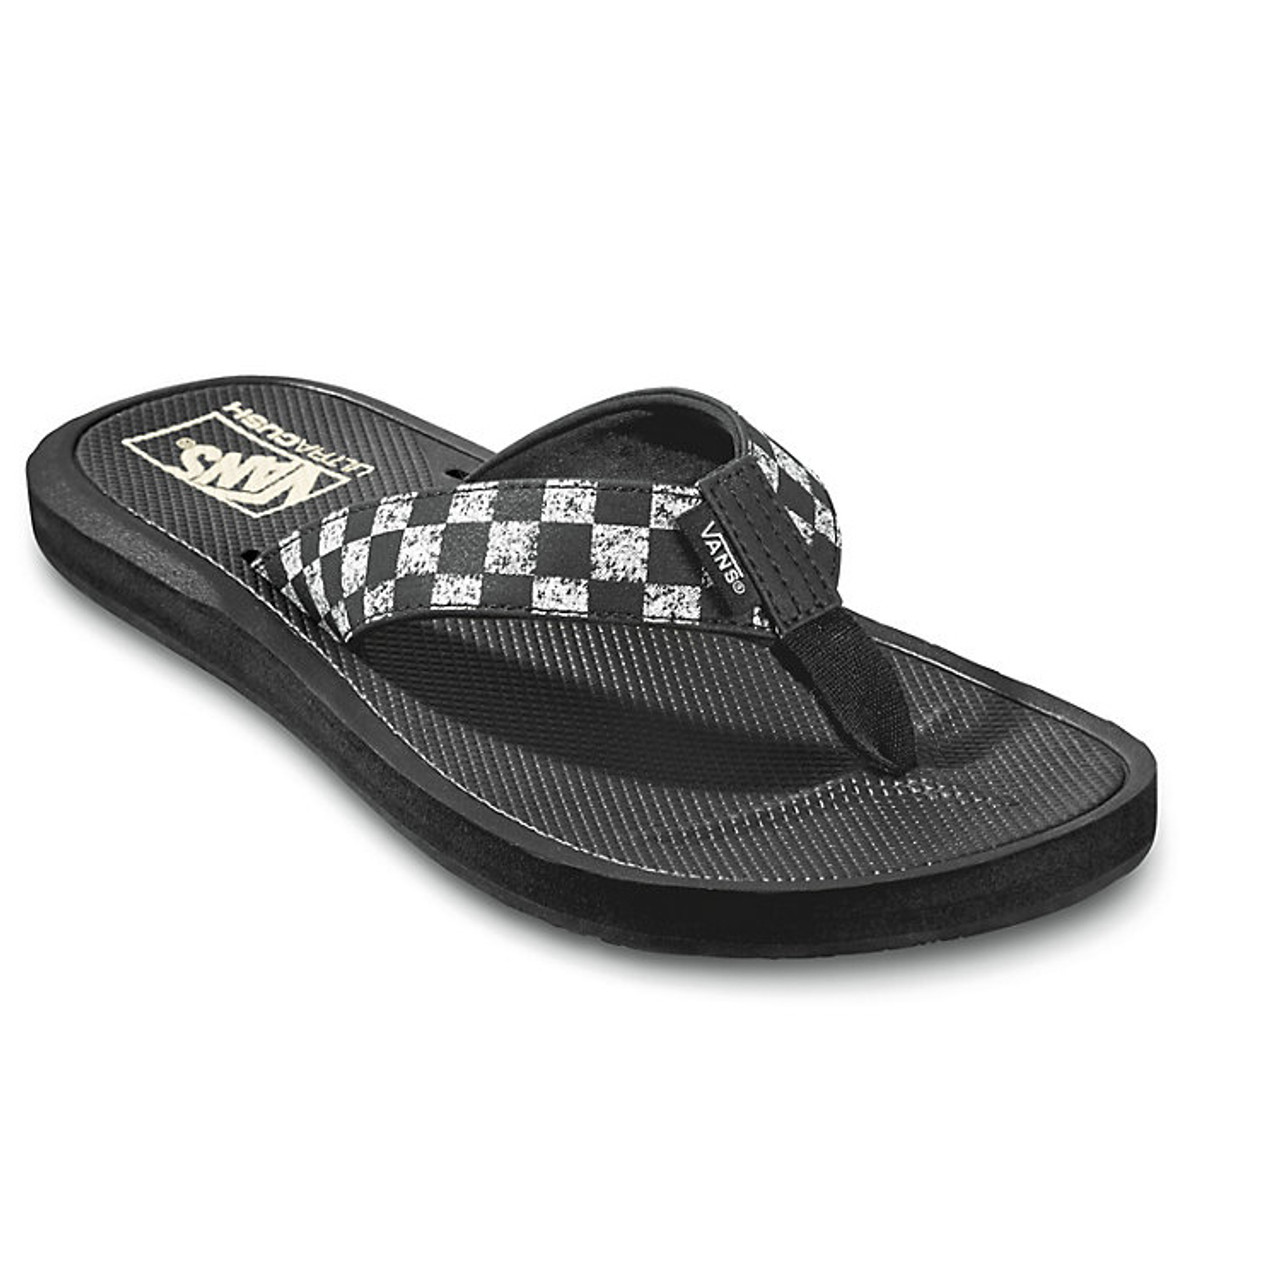 b6b74963ee53 Vans Flip Flop - Nexpa Synthetic - Distressed Checkerboard Black - Surf and  Dirt